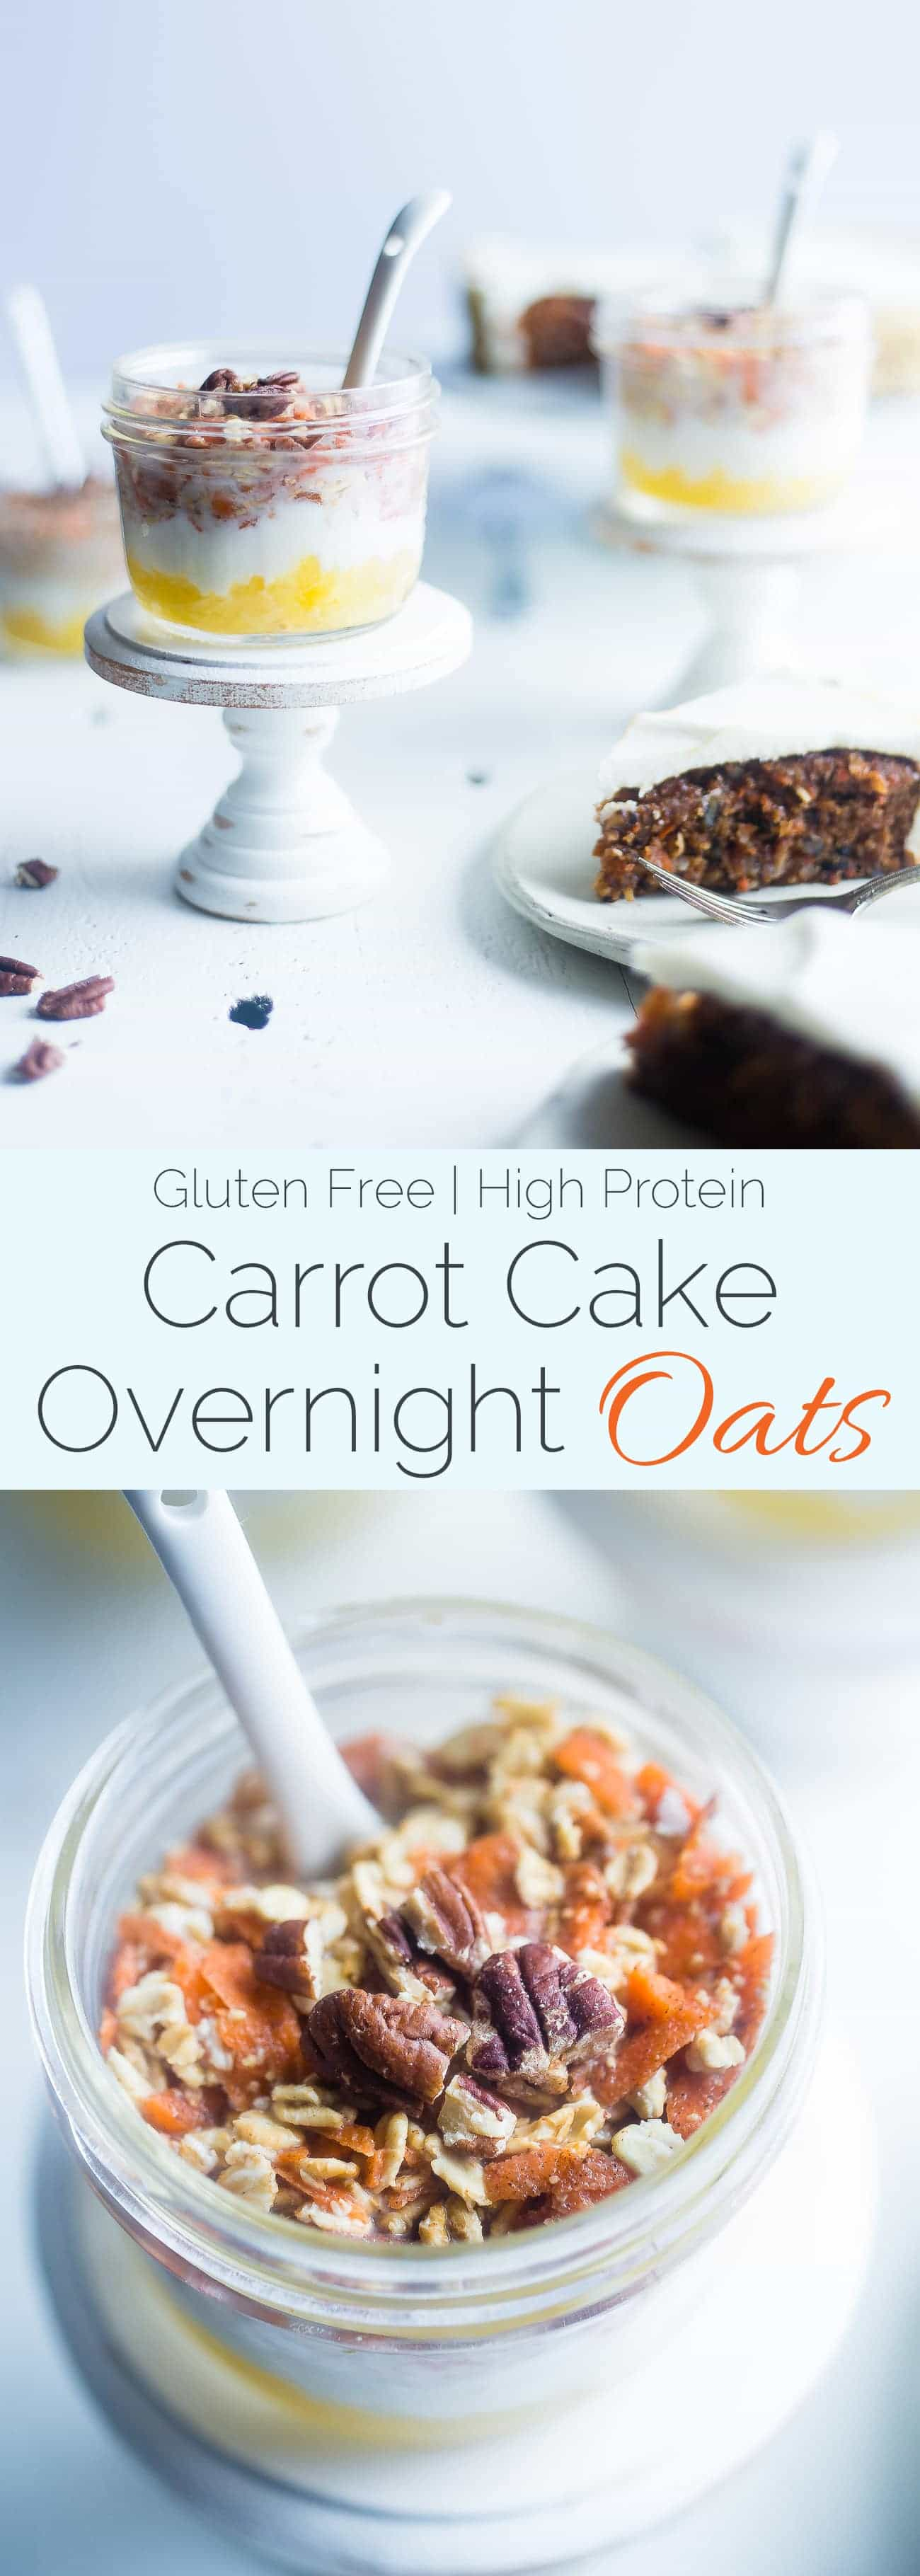 Carrot Cake Overnight Oats - Wake up to dessert for breakfast with these protein packed, gluten free carrot cake overnight oats! They're an easy, healthy breakfast for under 300 calories! | Foodfaithfitness.com | @FoodFaithFit